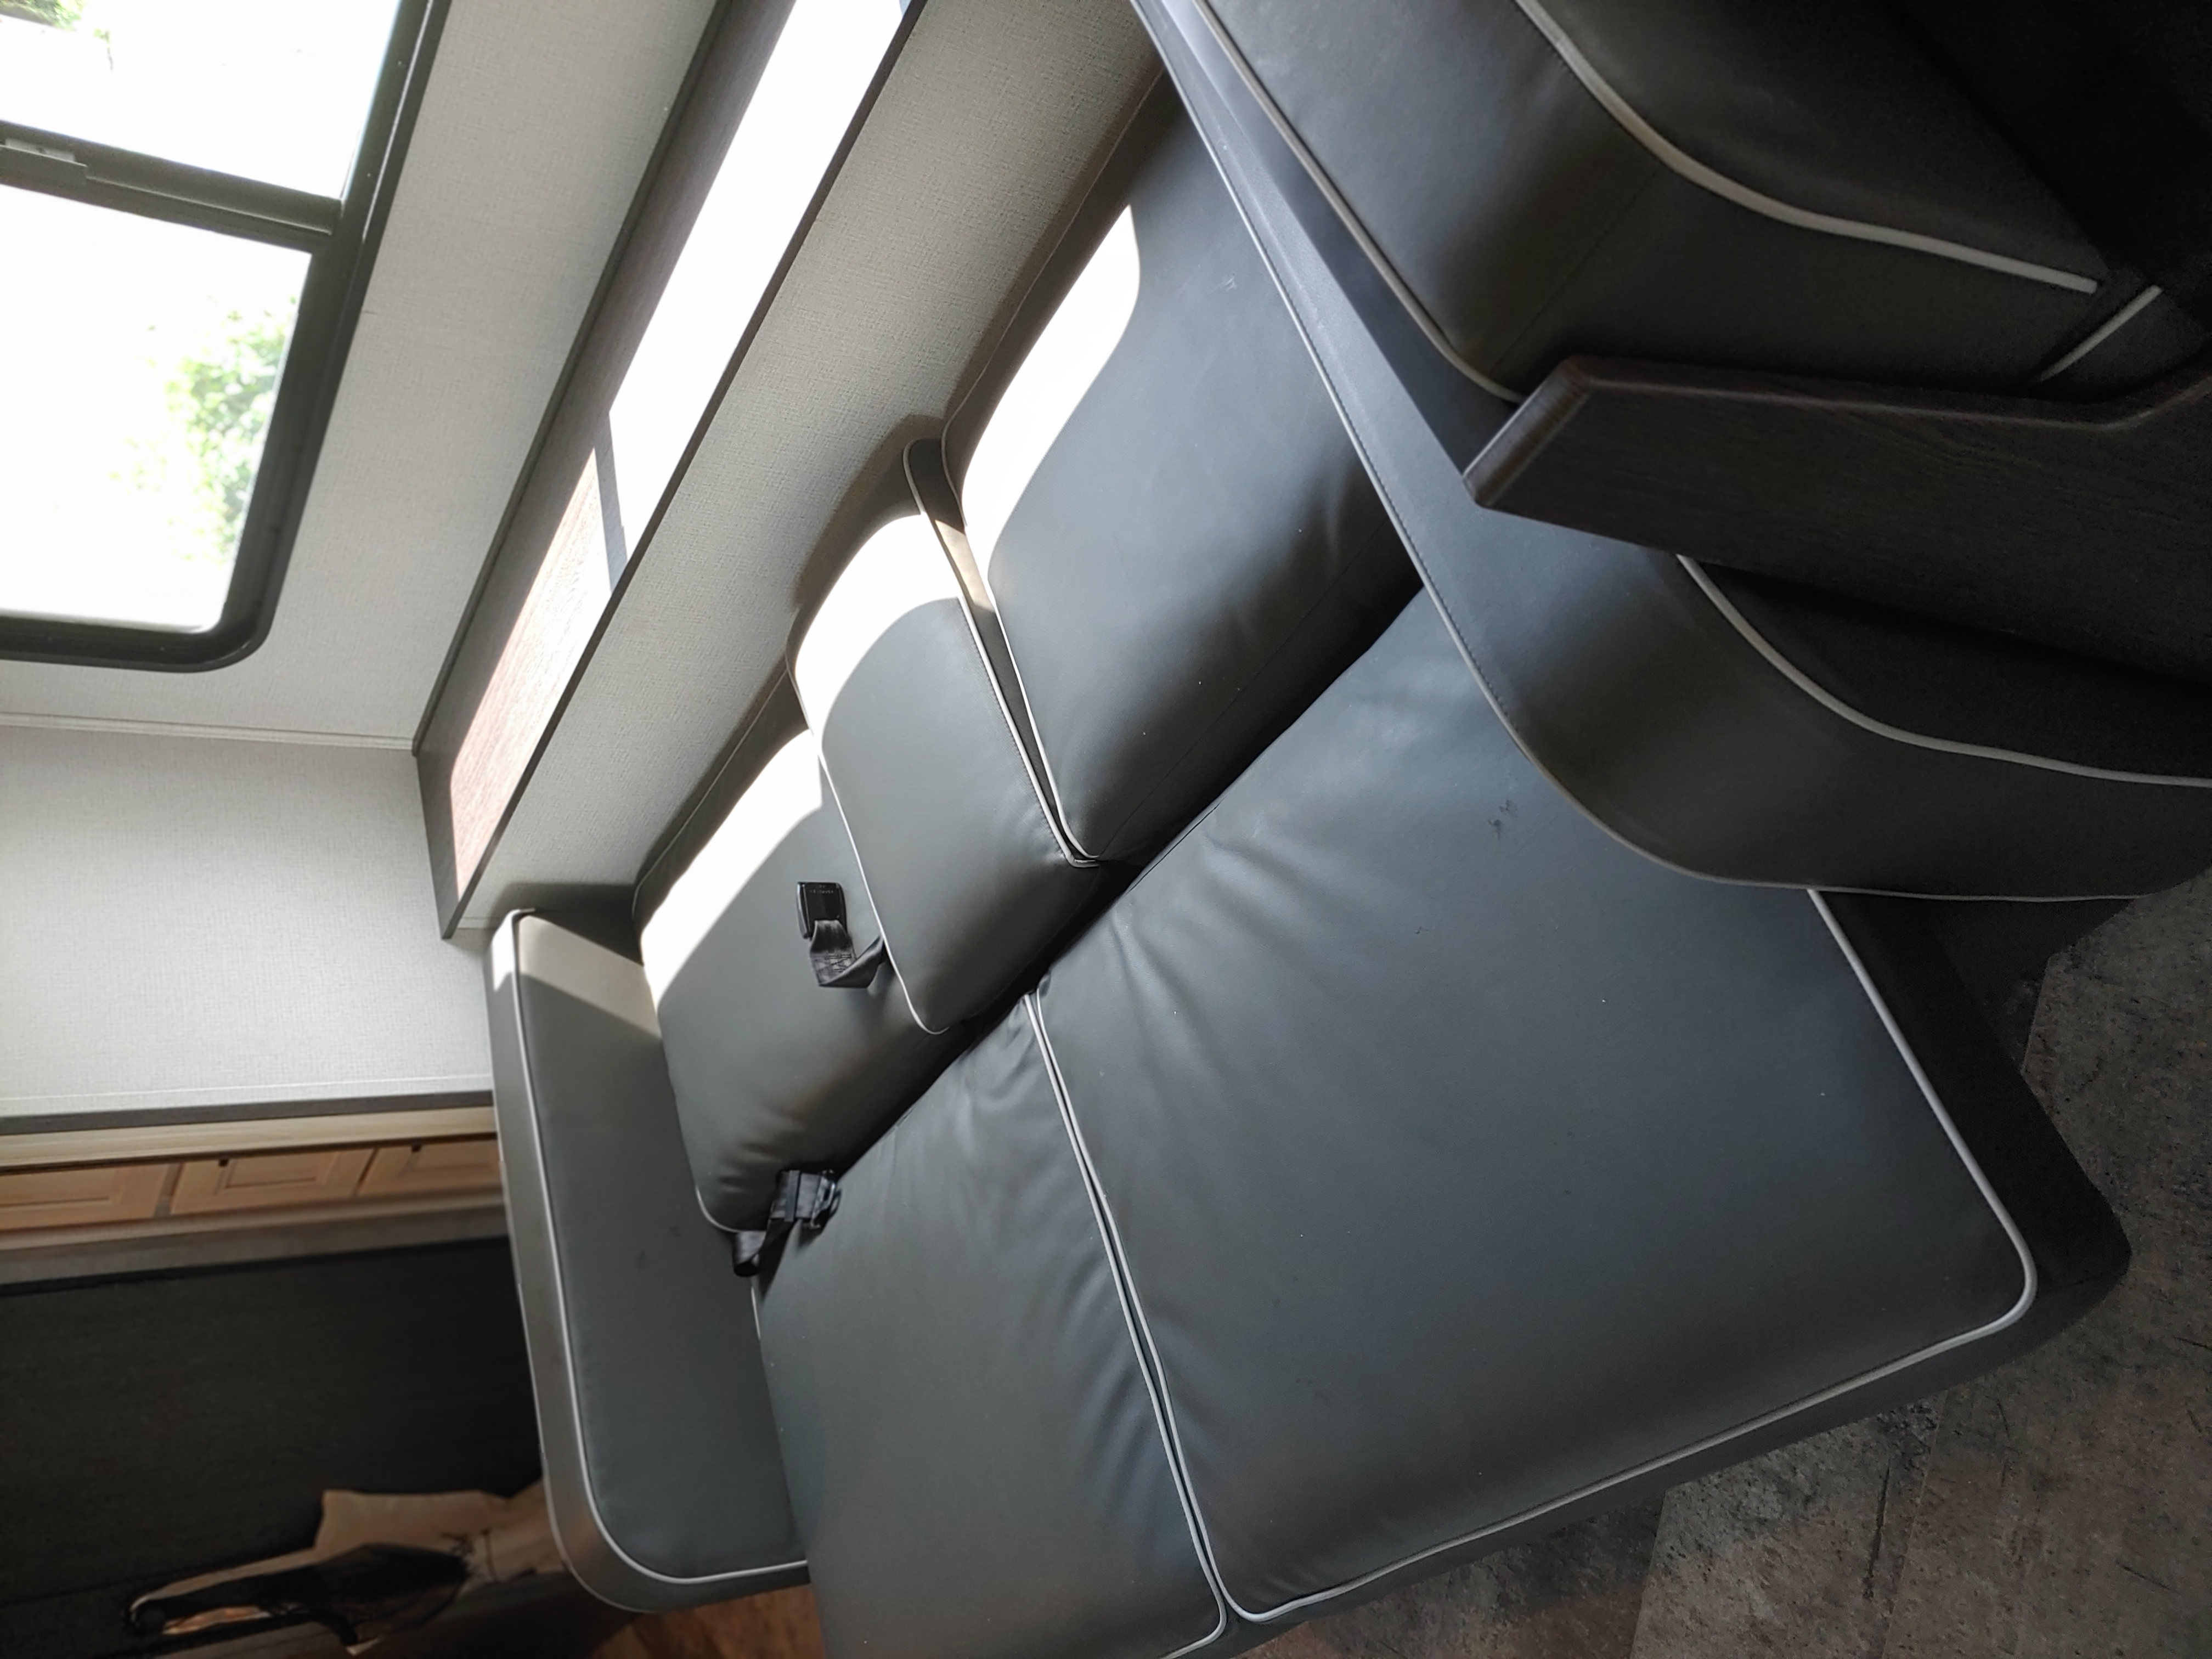 Sofa folded out into bed. Forest River Sunseeker 2550DSLE 2020